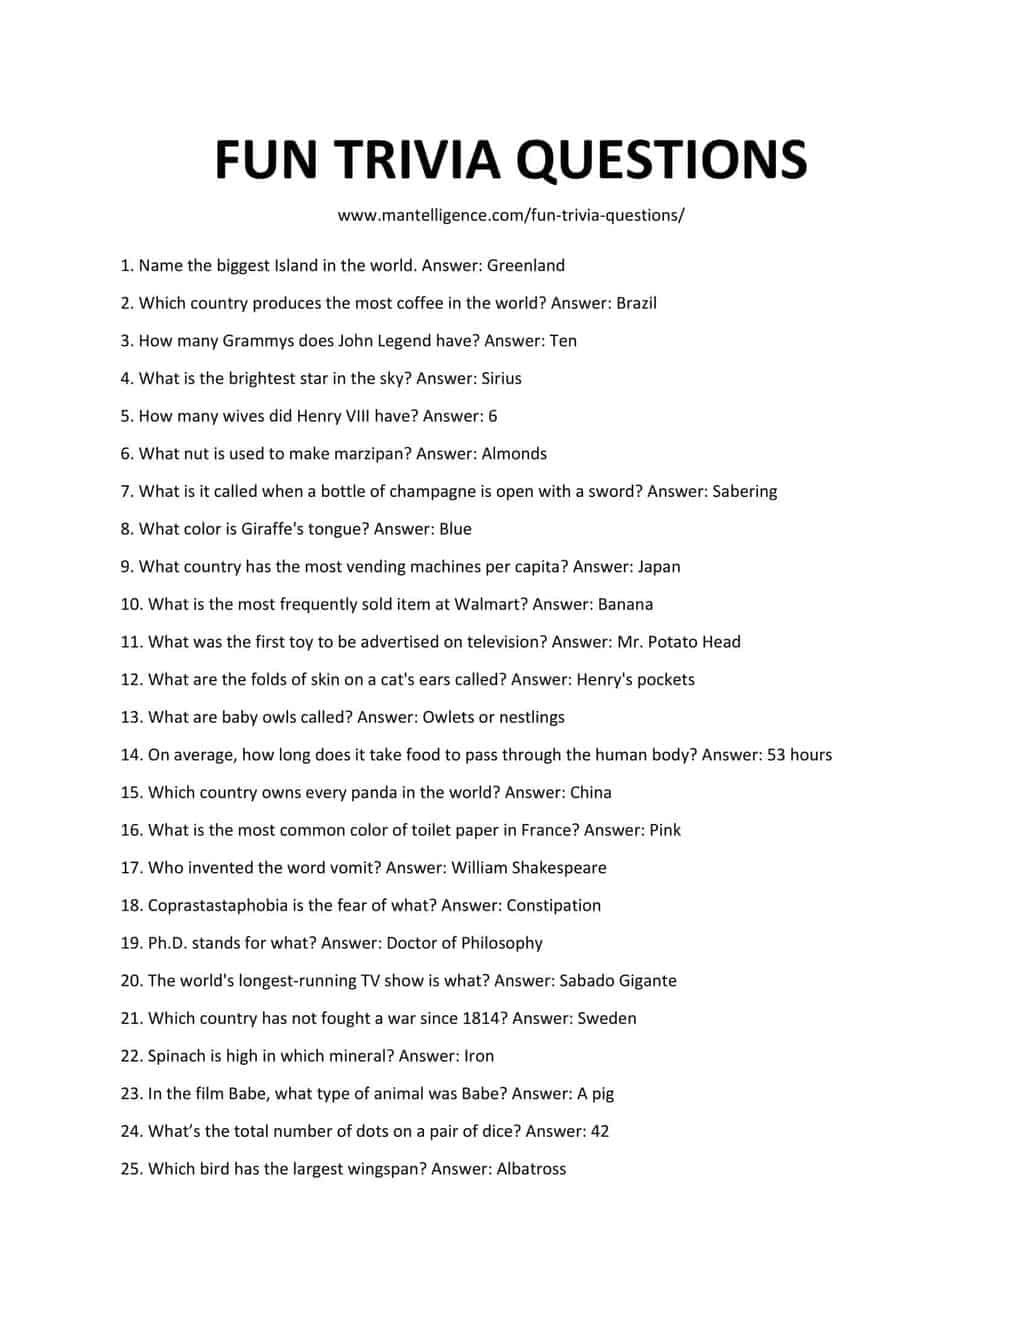 Downloadable List of Fun Trivia Questions